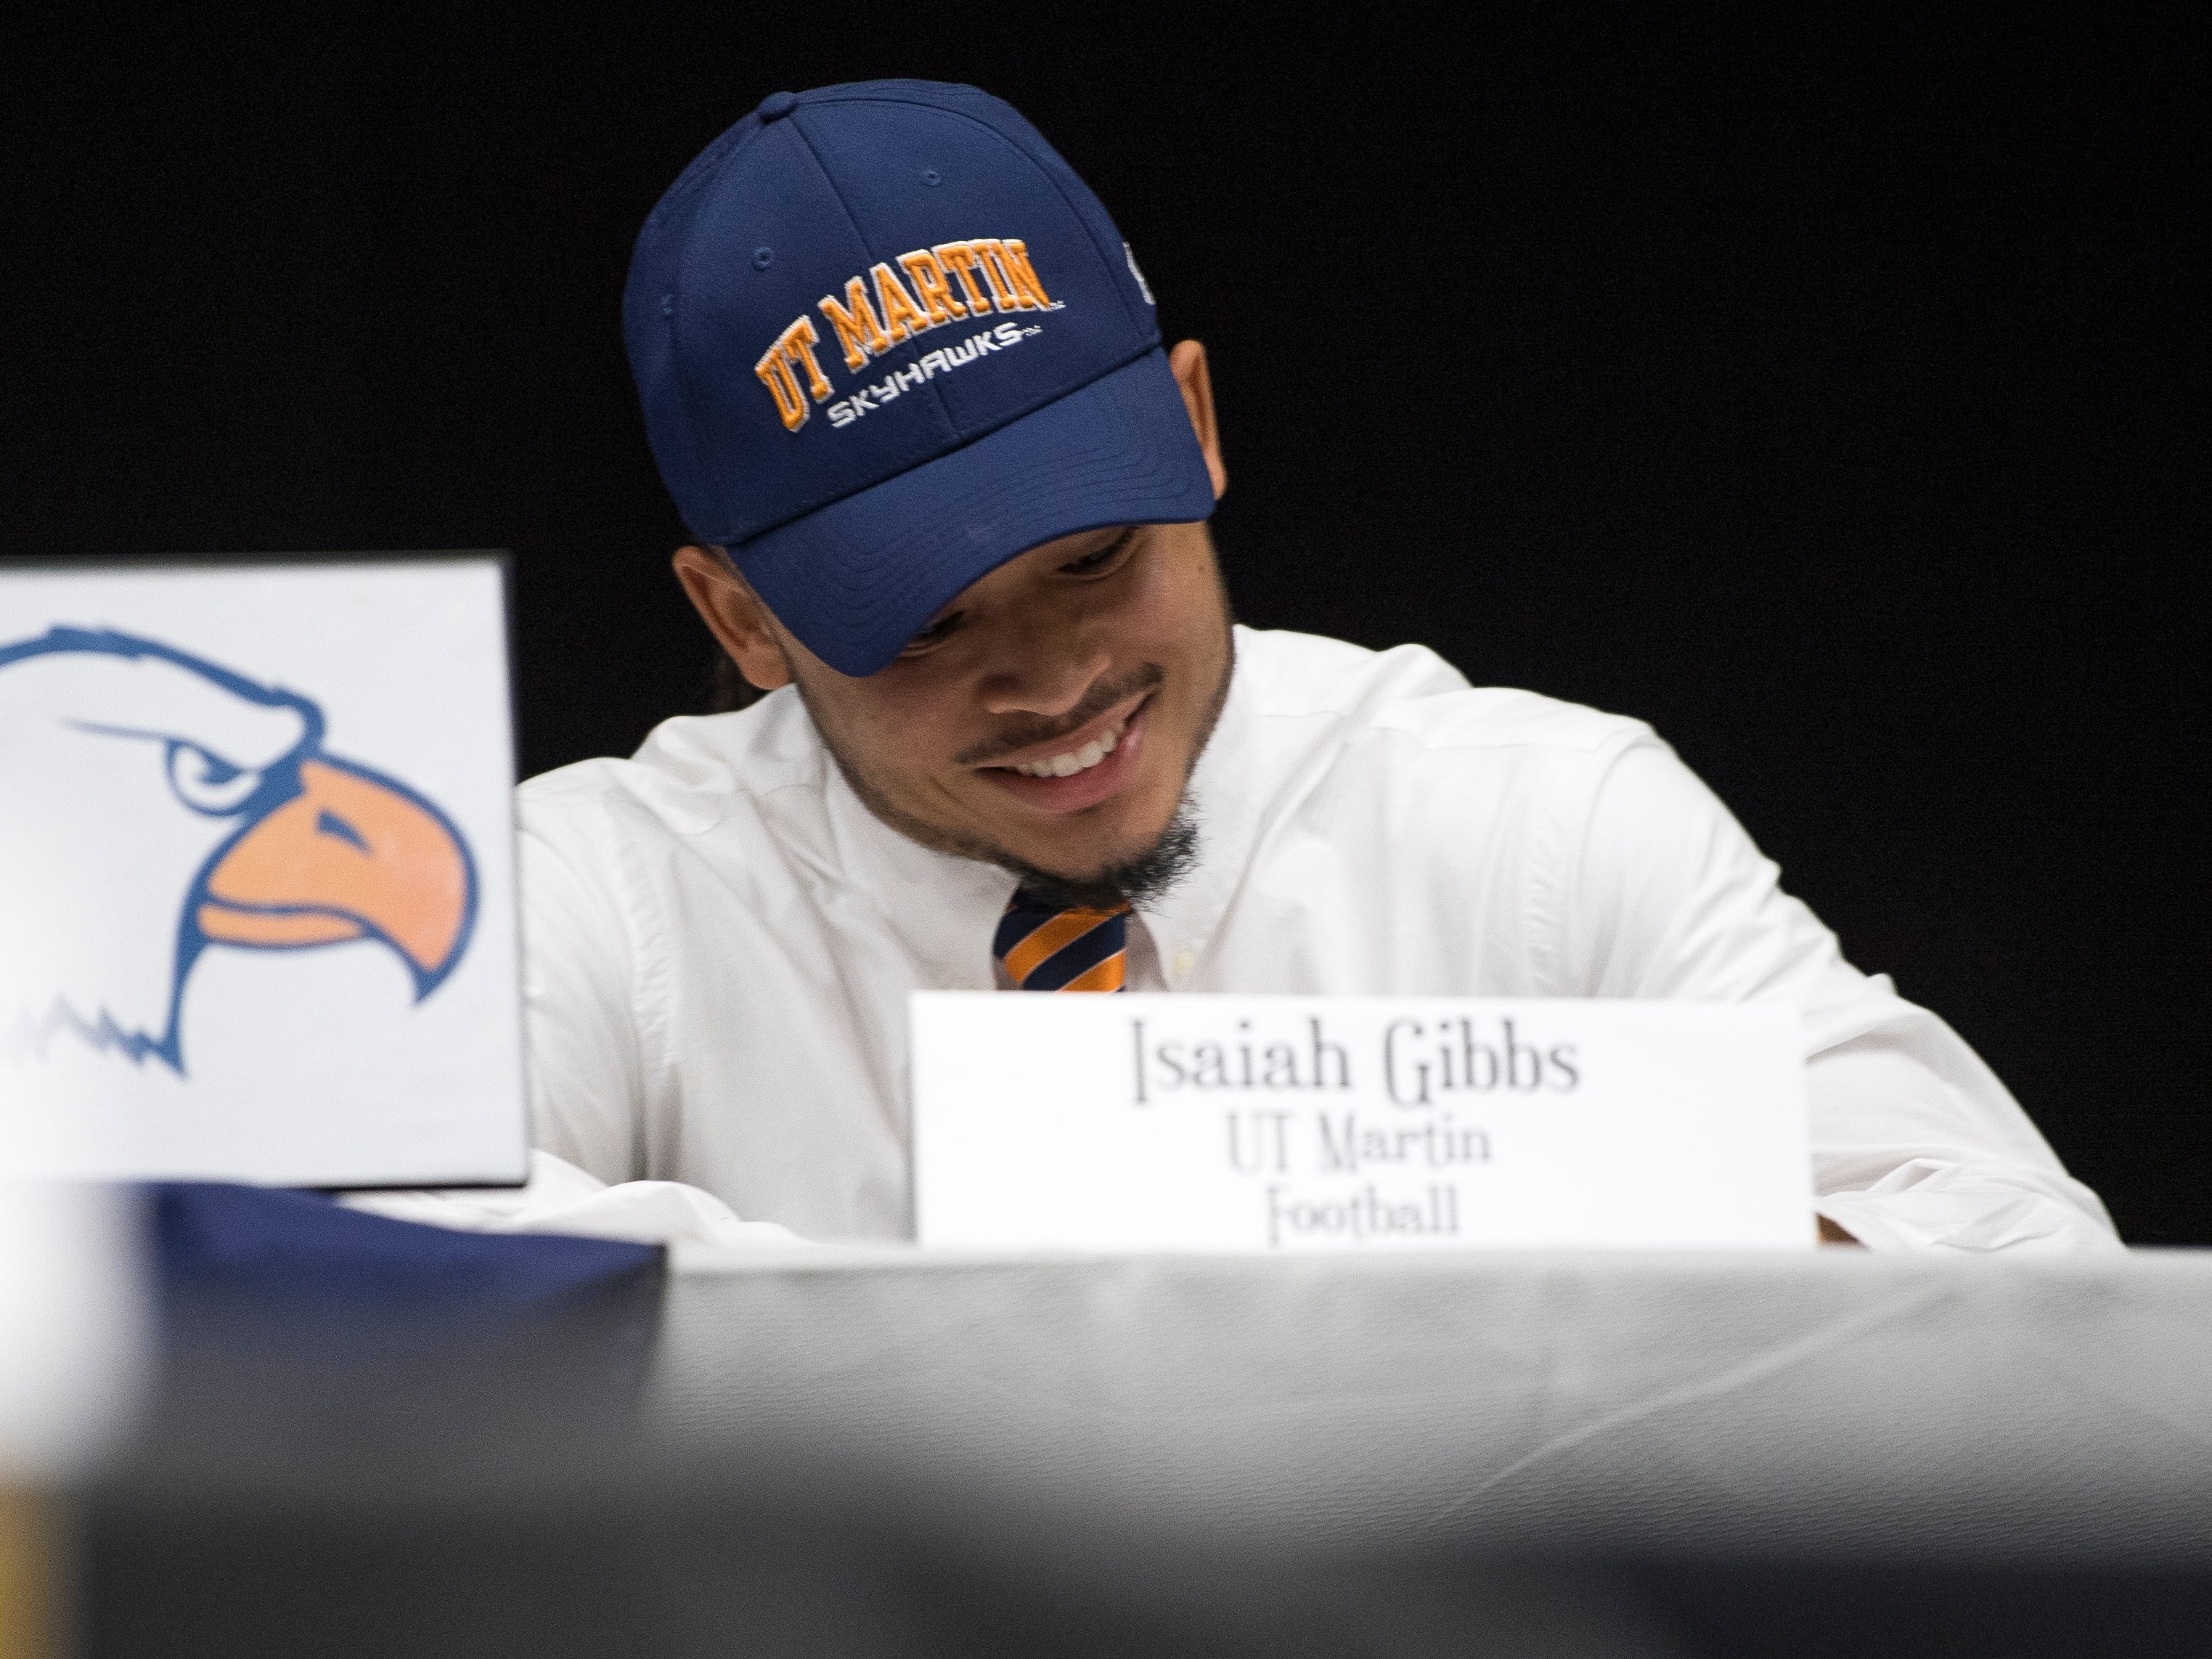 Farragut football player Isiah Gibbs signs with UT-Martin during a National Signing Day event at Farragut High's auditorium on Wednesday, February 6, 2019.